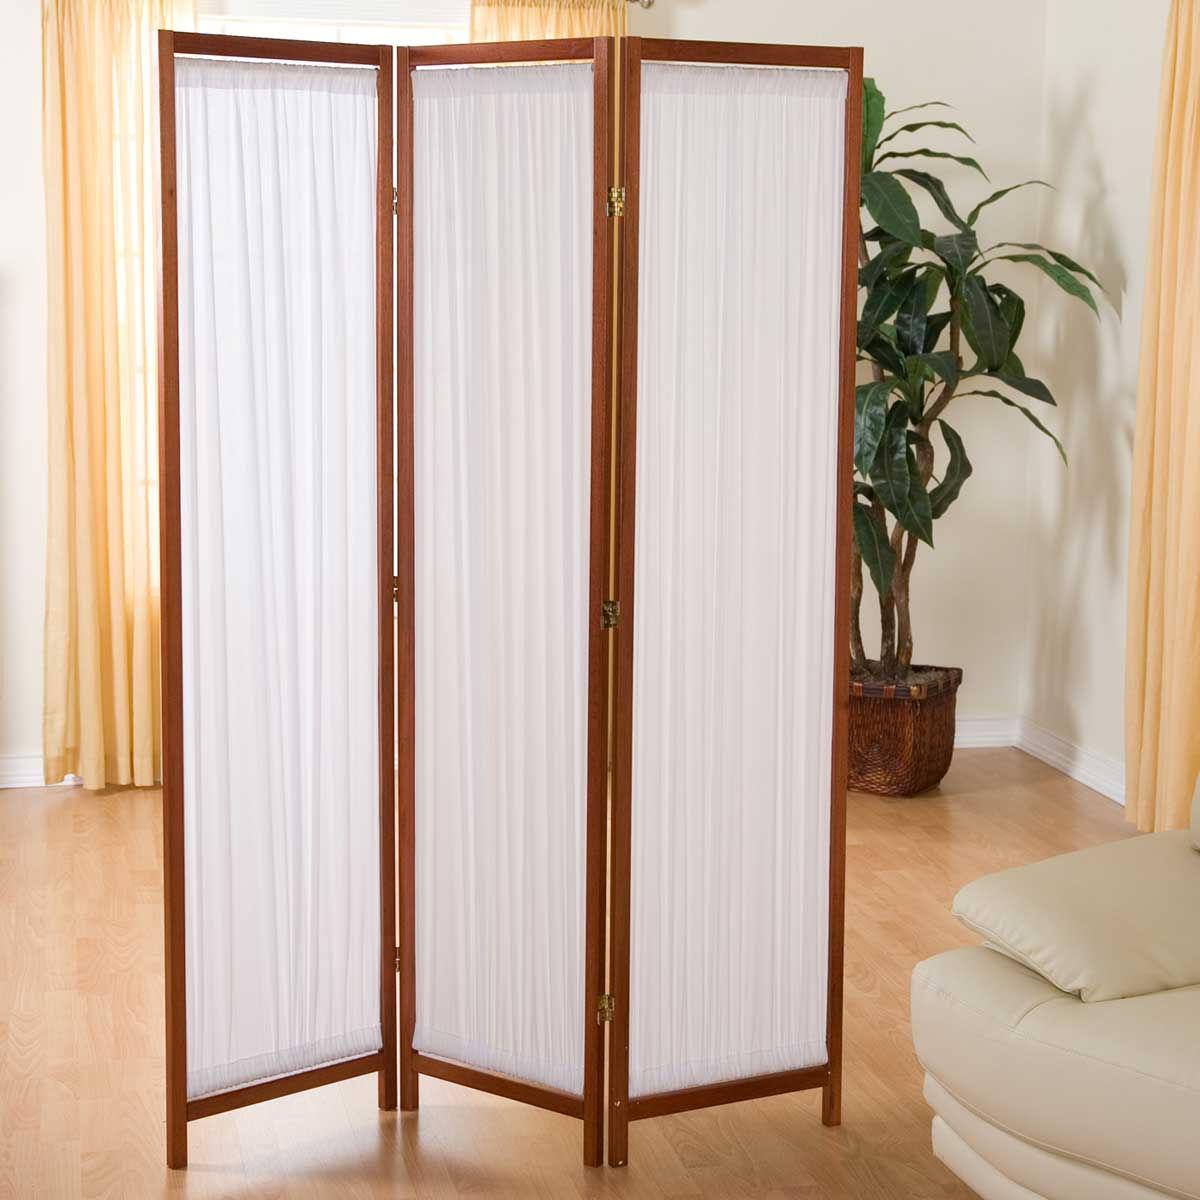 Diy room divider Room dividers and Wooden room dividers